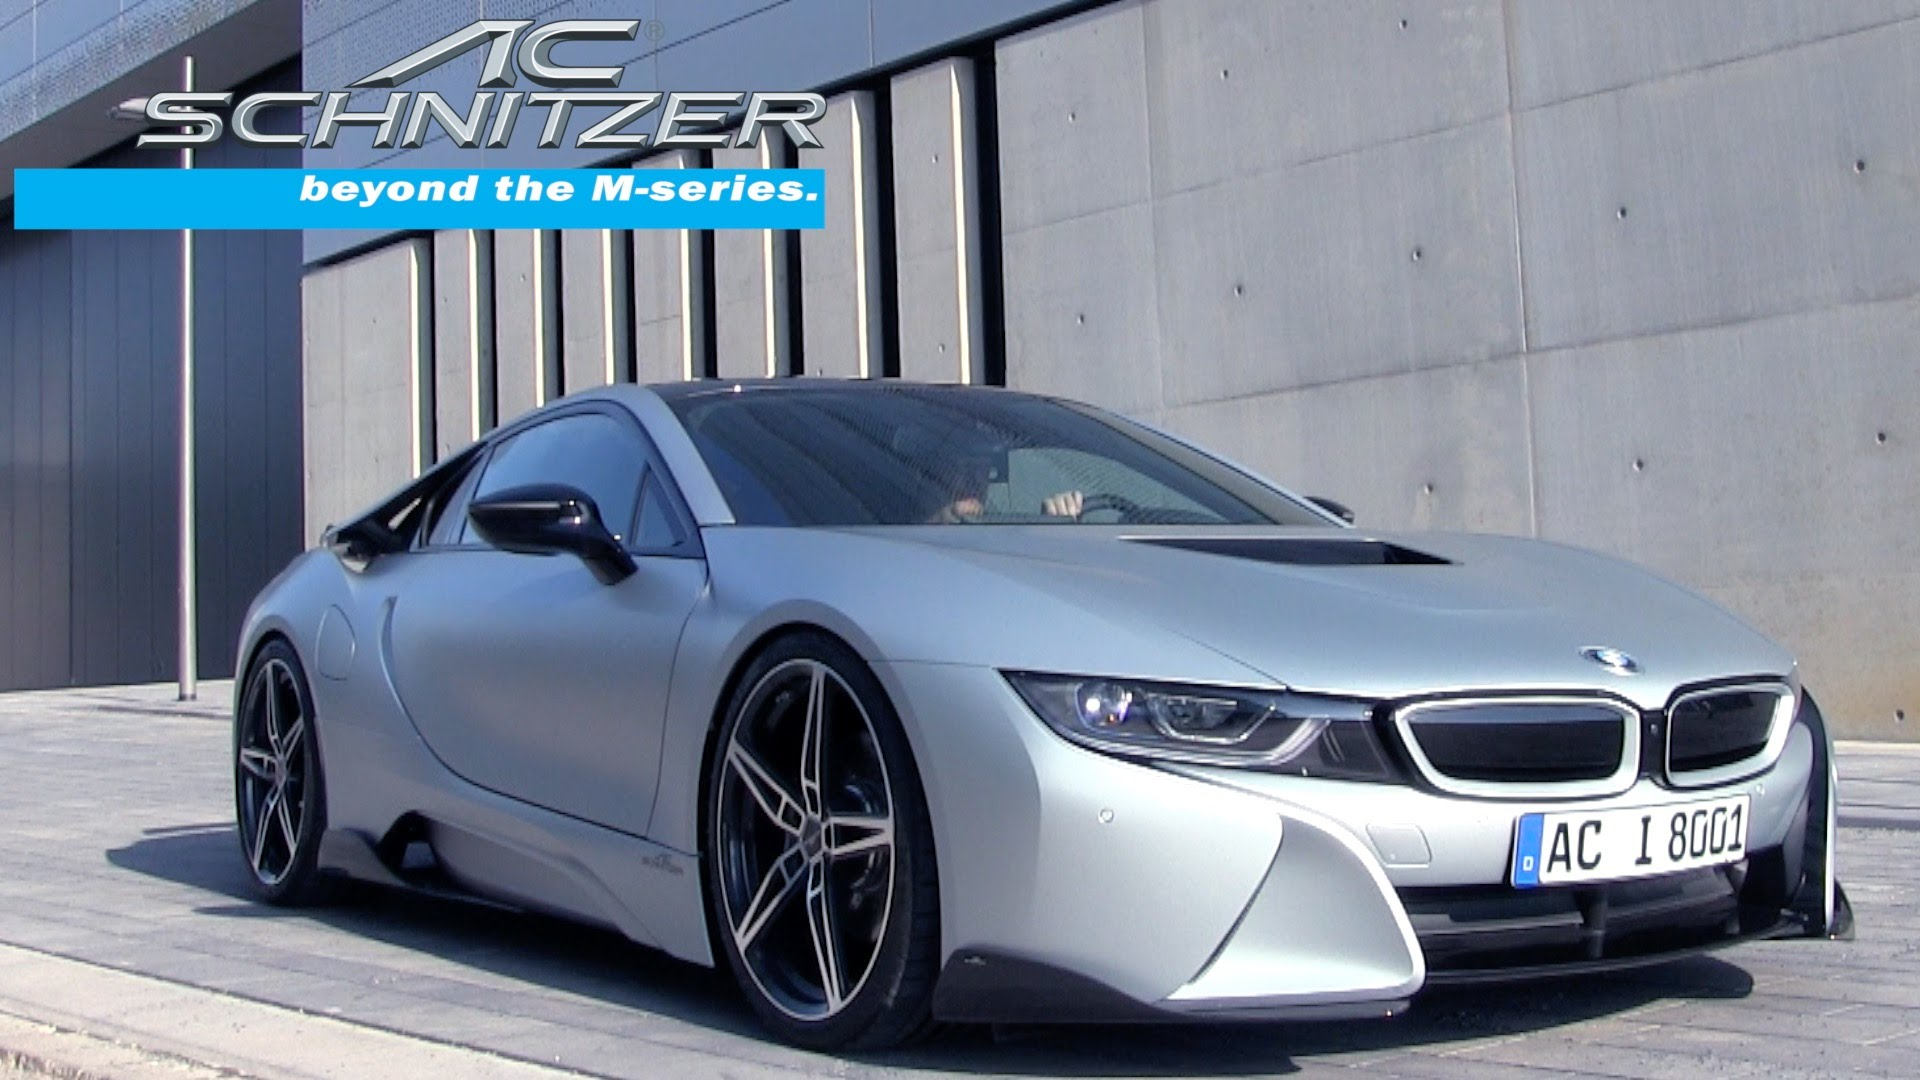 Tuning Version Of The Bmw I8 Is Better Than The Original